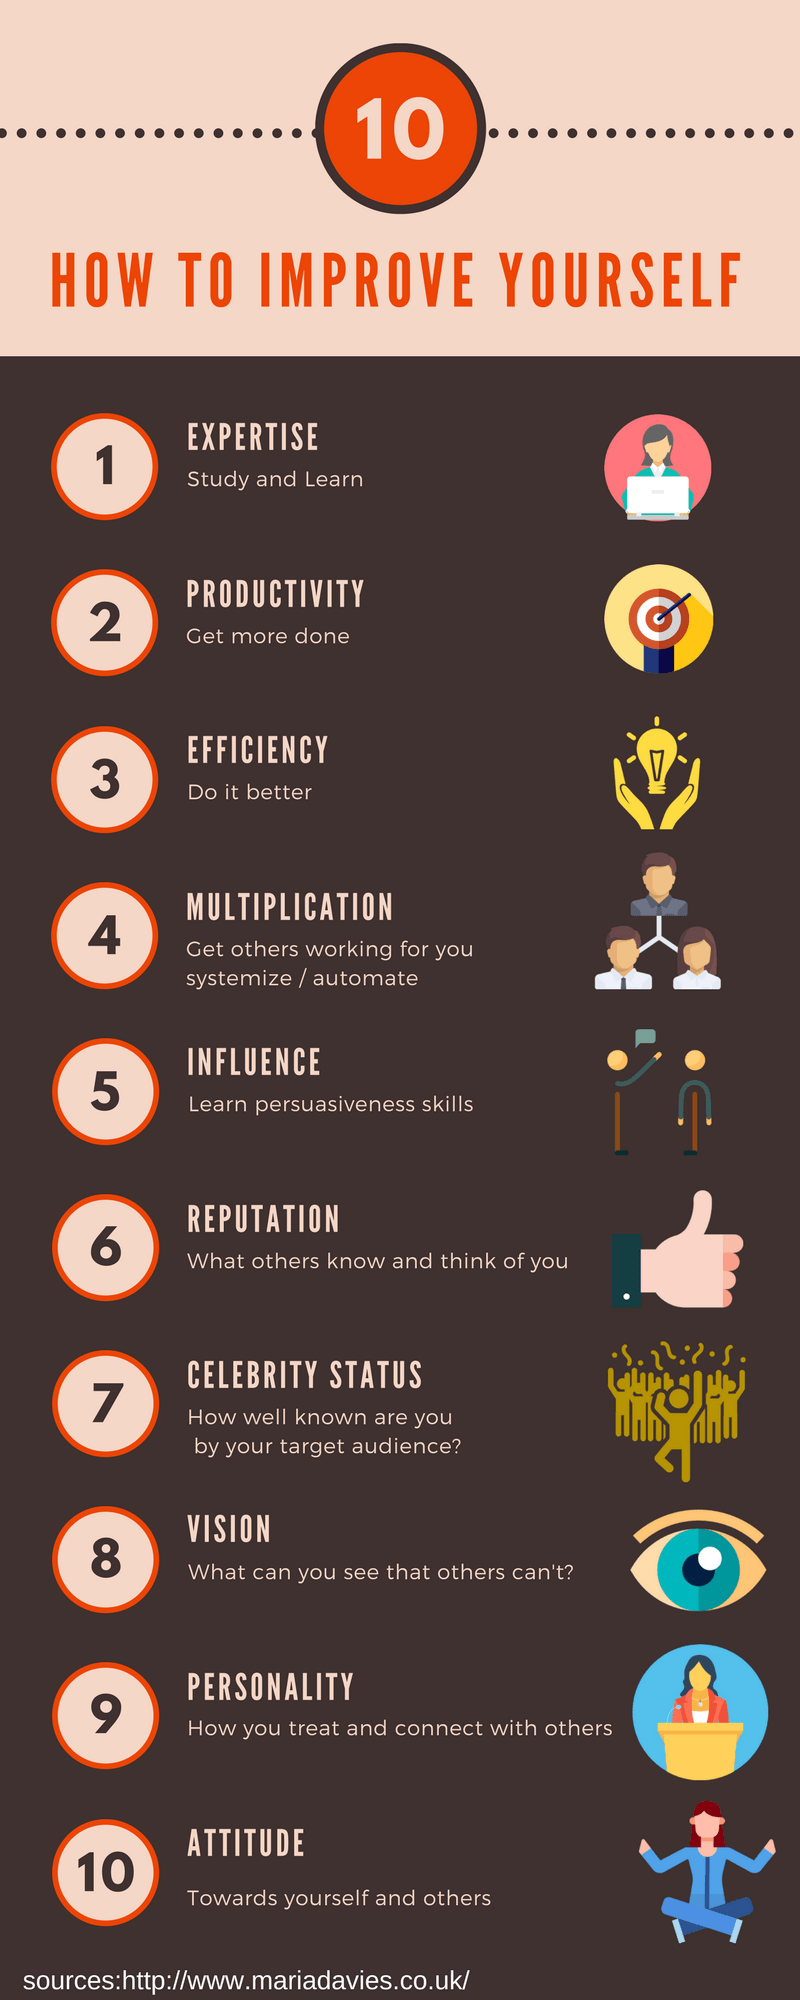 How to Improve Yourself Infographic